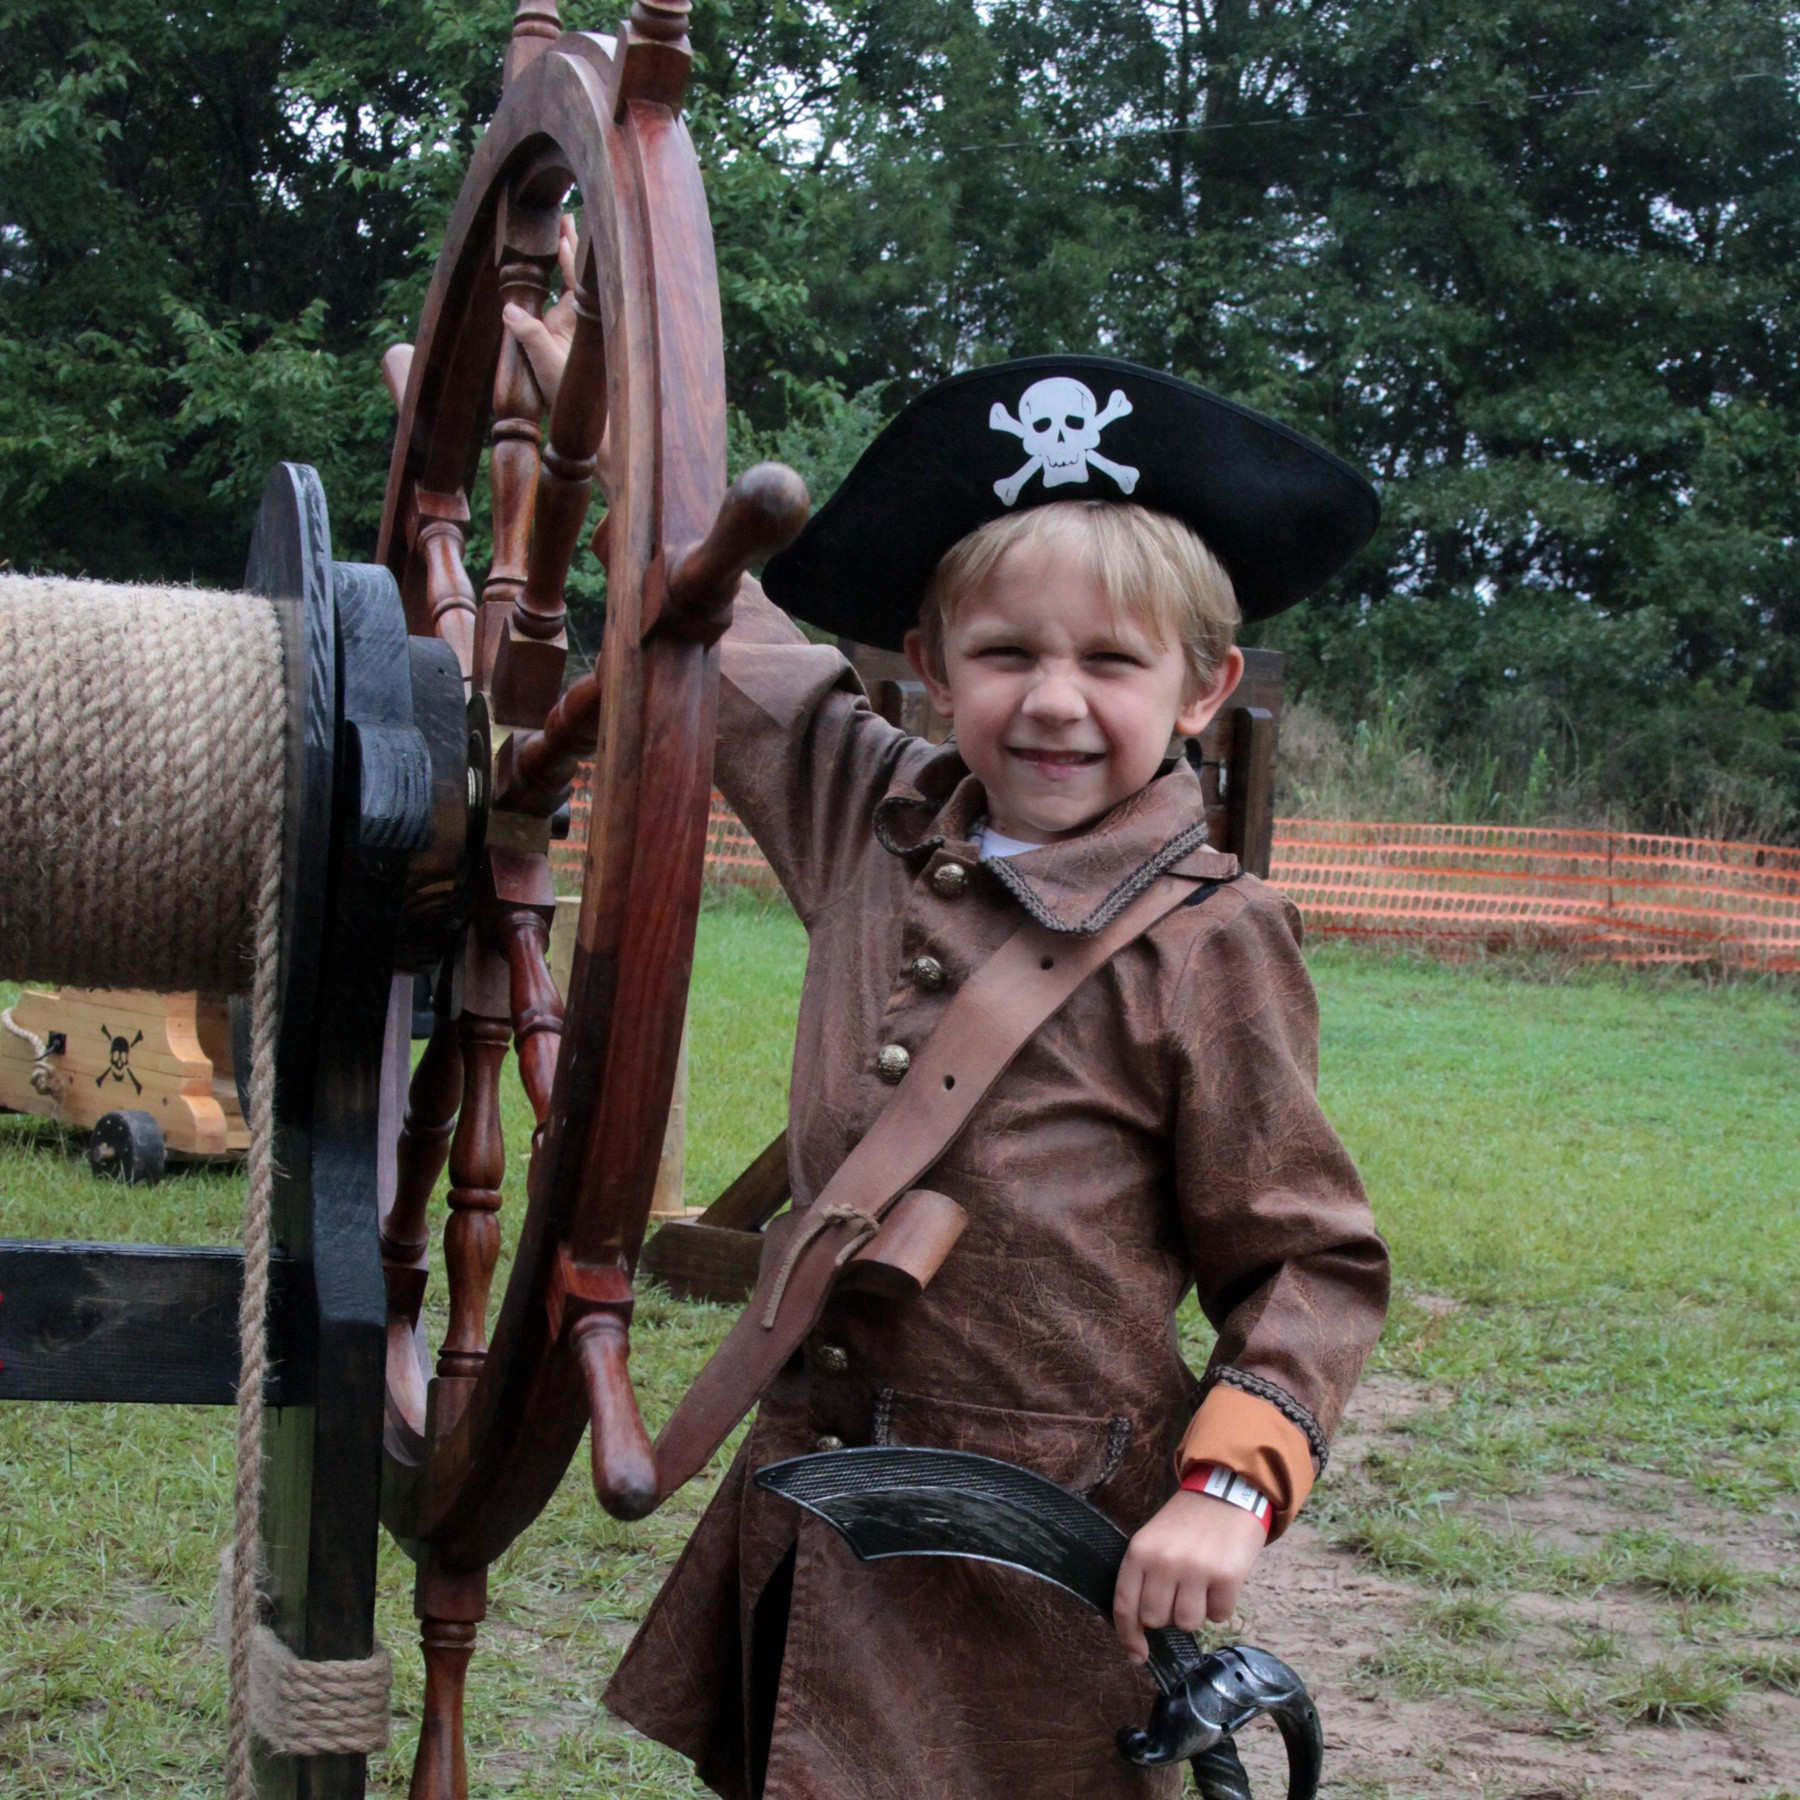 Jack, 6, from Waxhaw, spins Captain Jack's wheel at the Pirate Encampment at the Museum of the Waxhaws in 2019.